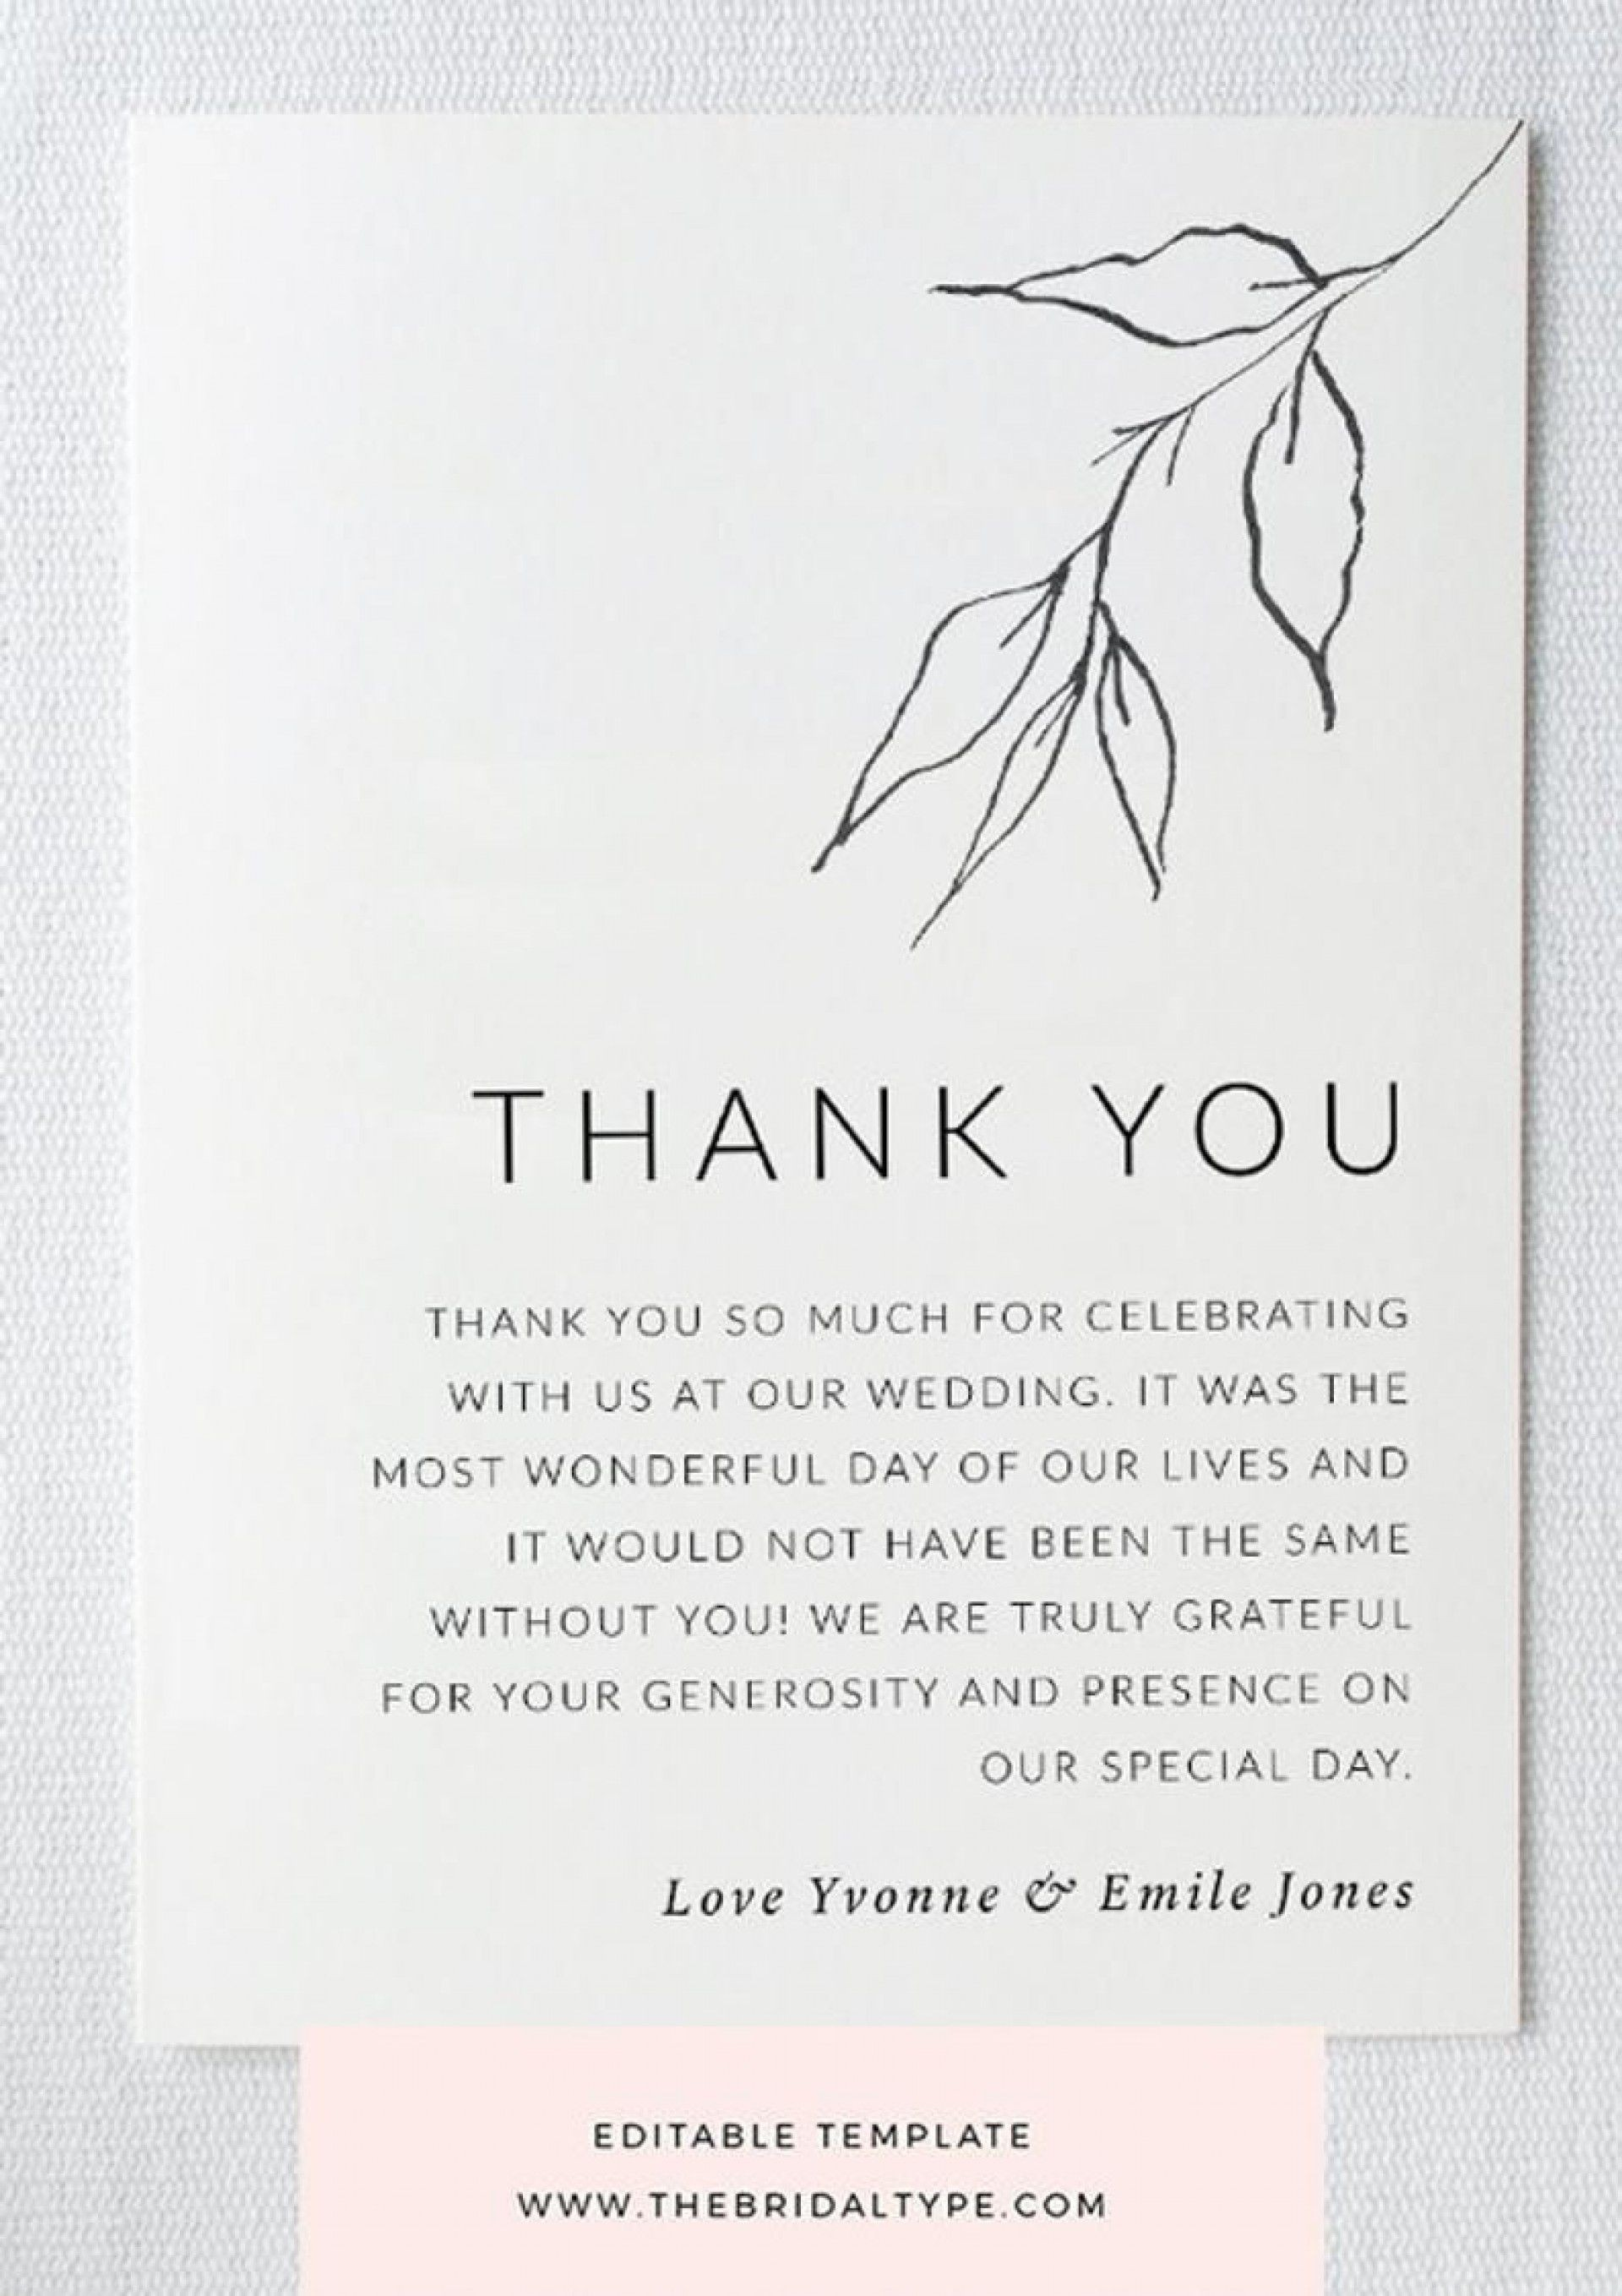 000 Singular Thank You Note Template Printable Concept  Letter Baby Card Word1920